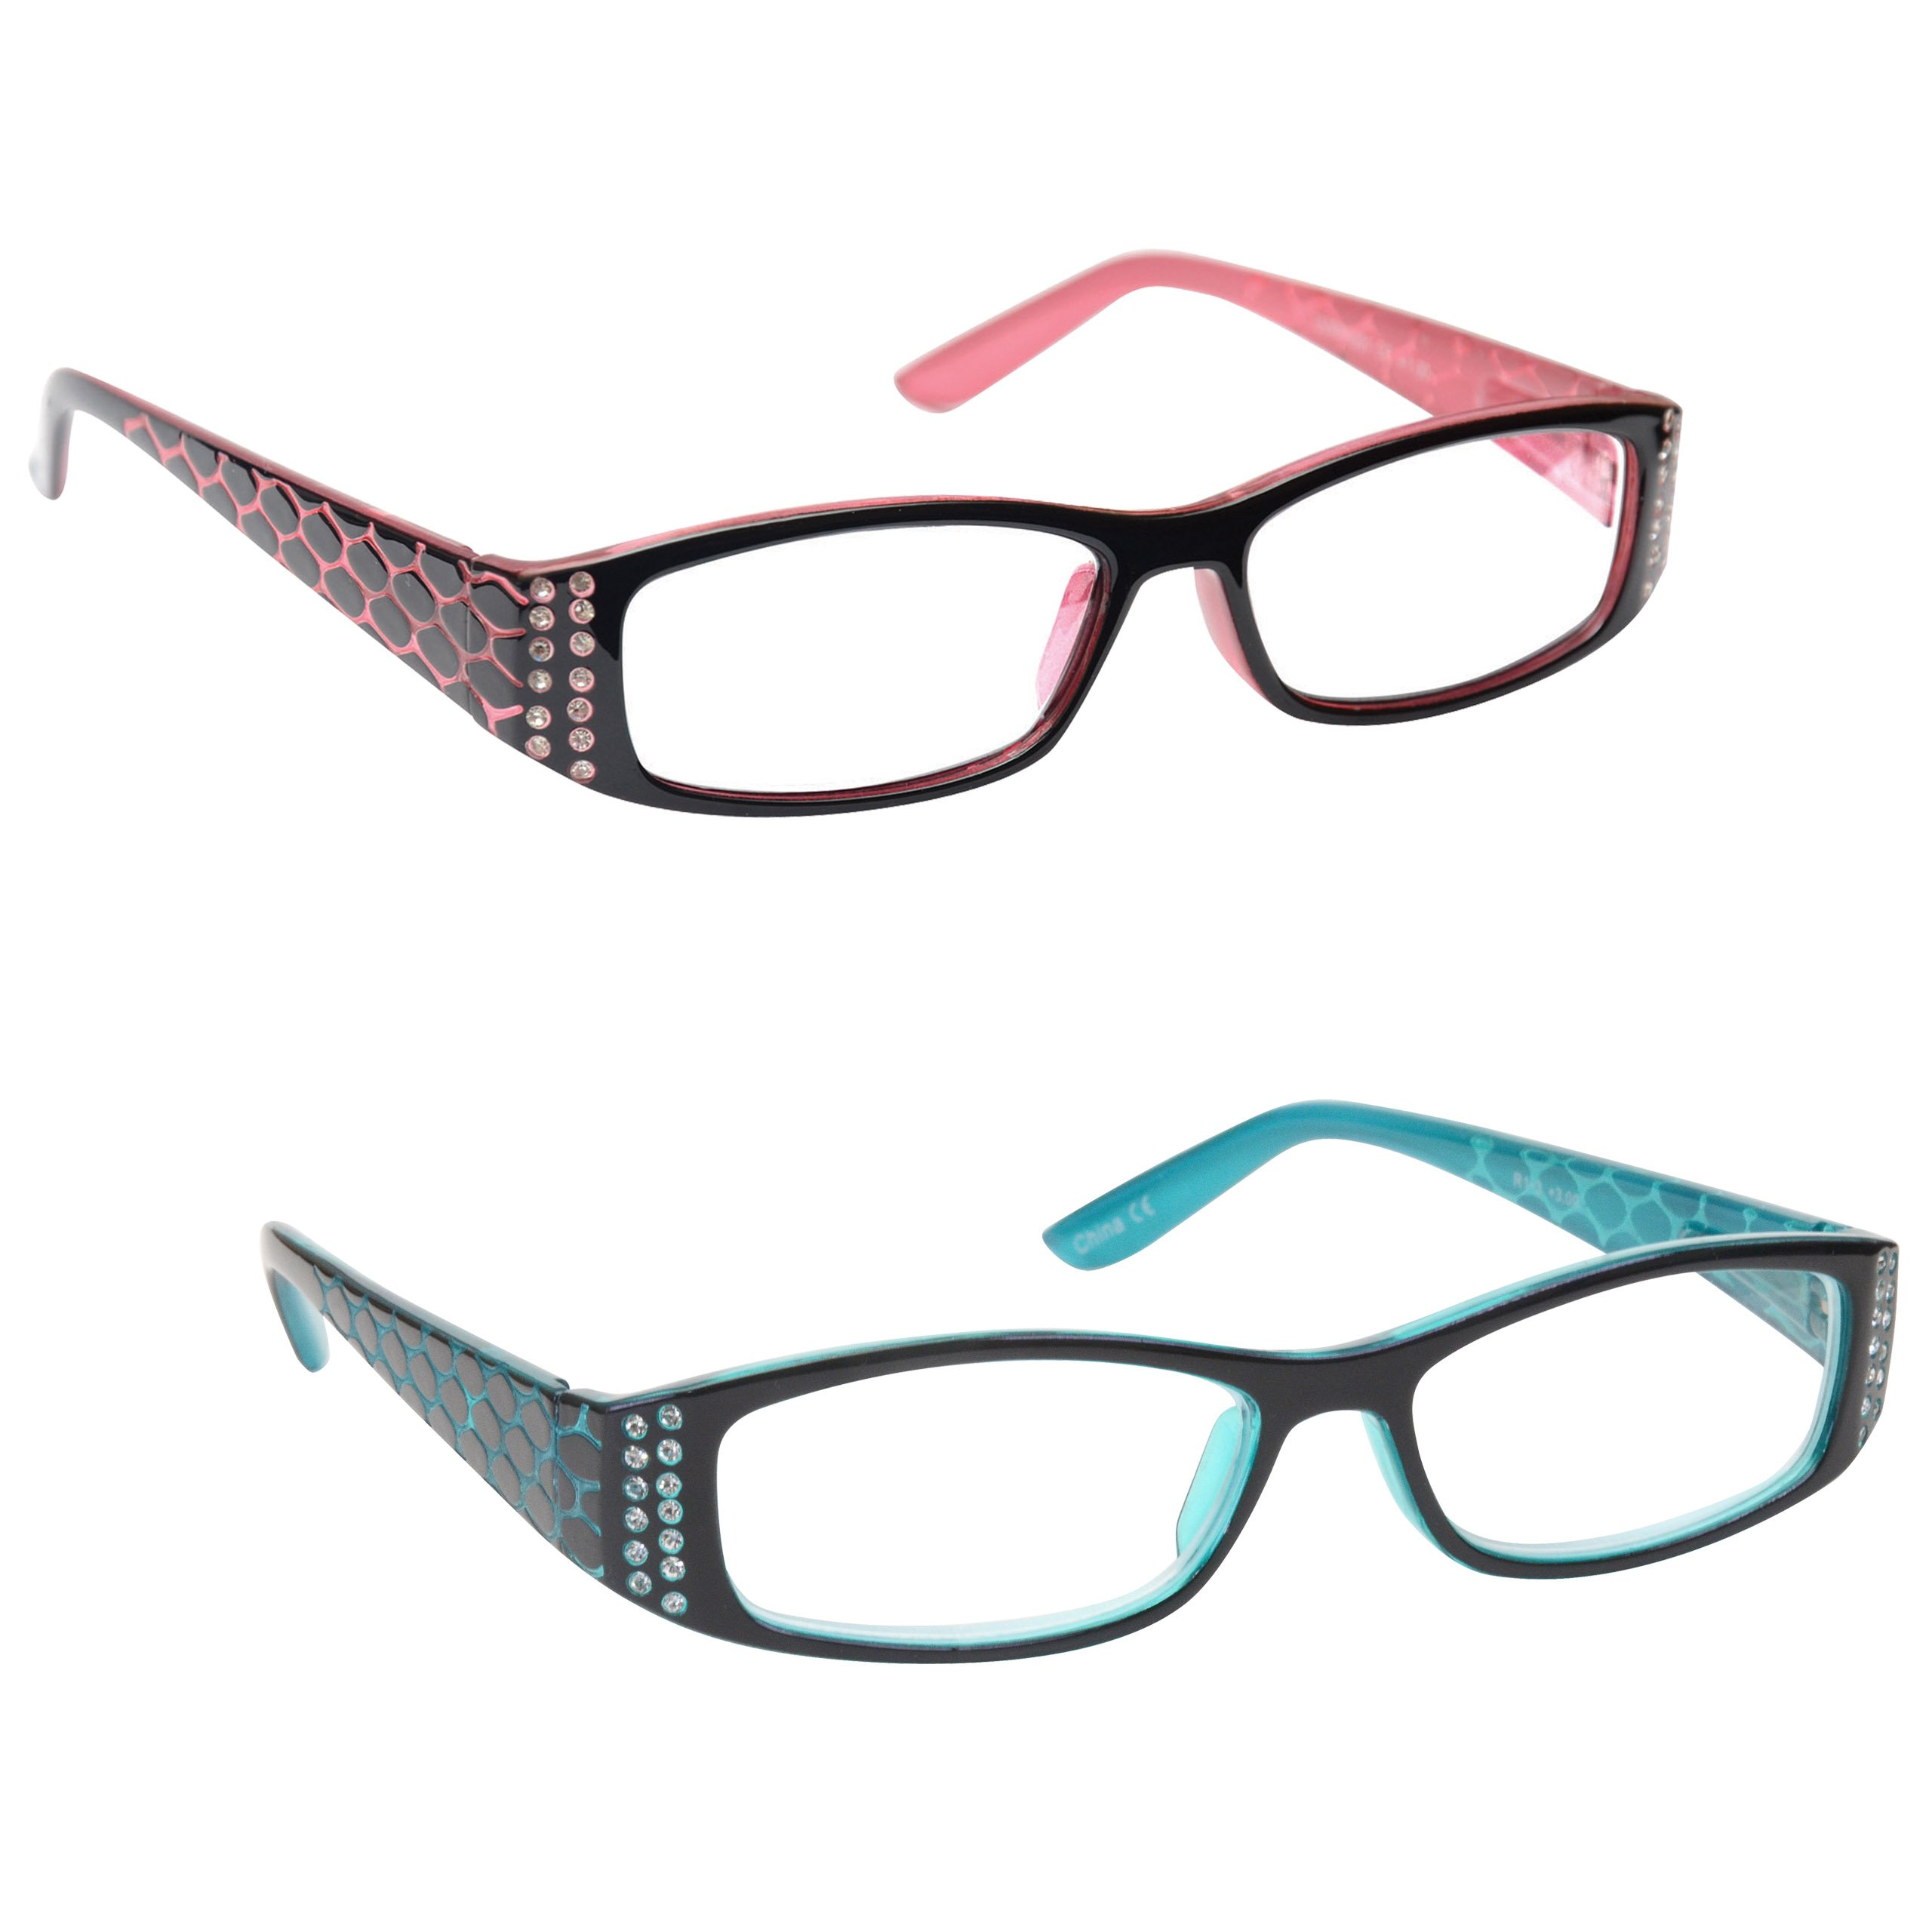 The Reading Glasses Company Pink Black & Tiffany Style Blue Readers Value 2 Pack Womens Ladies Inc Bag RR1-43 +1.75